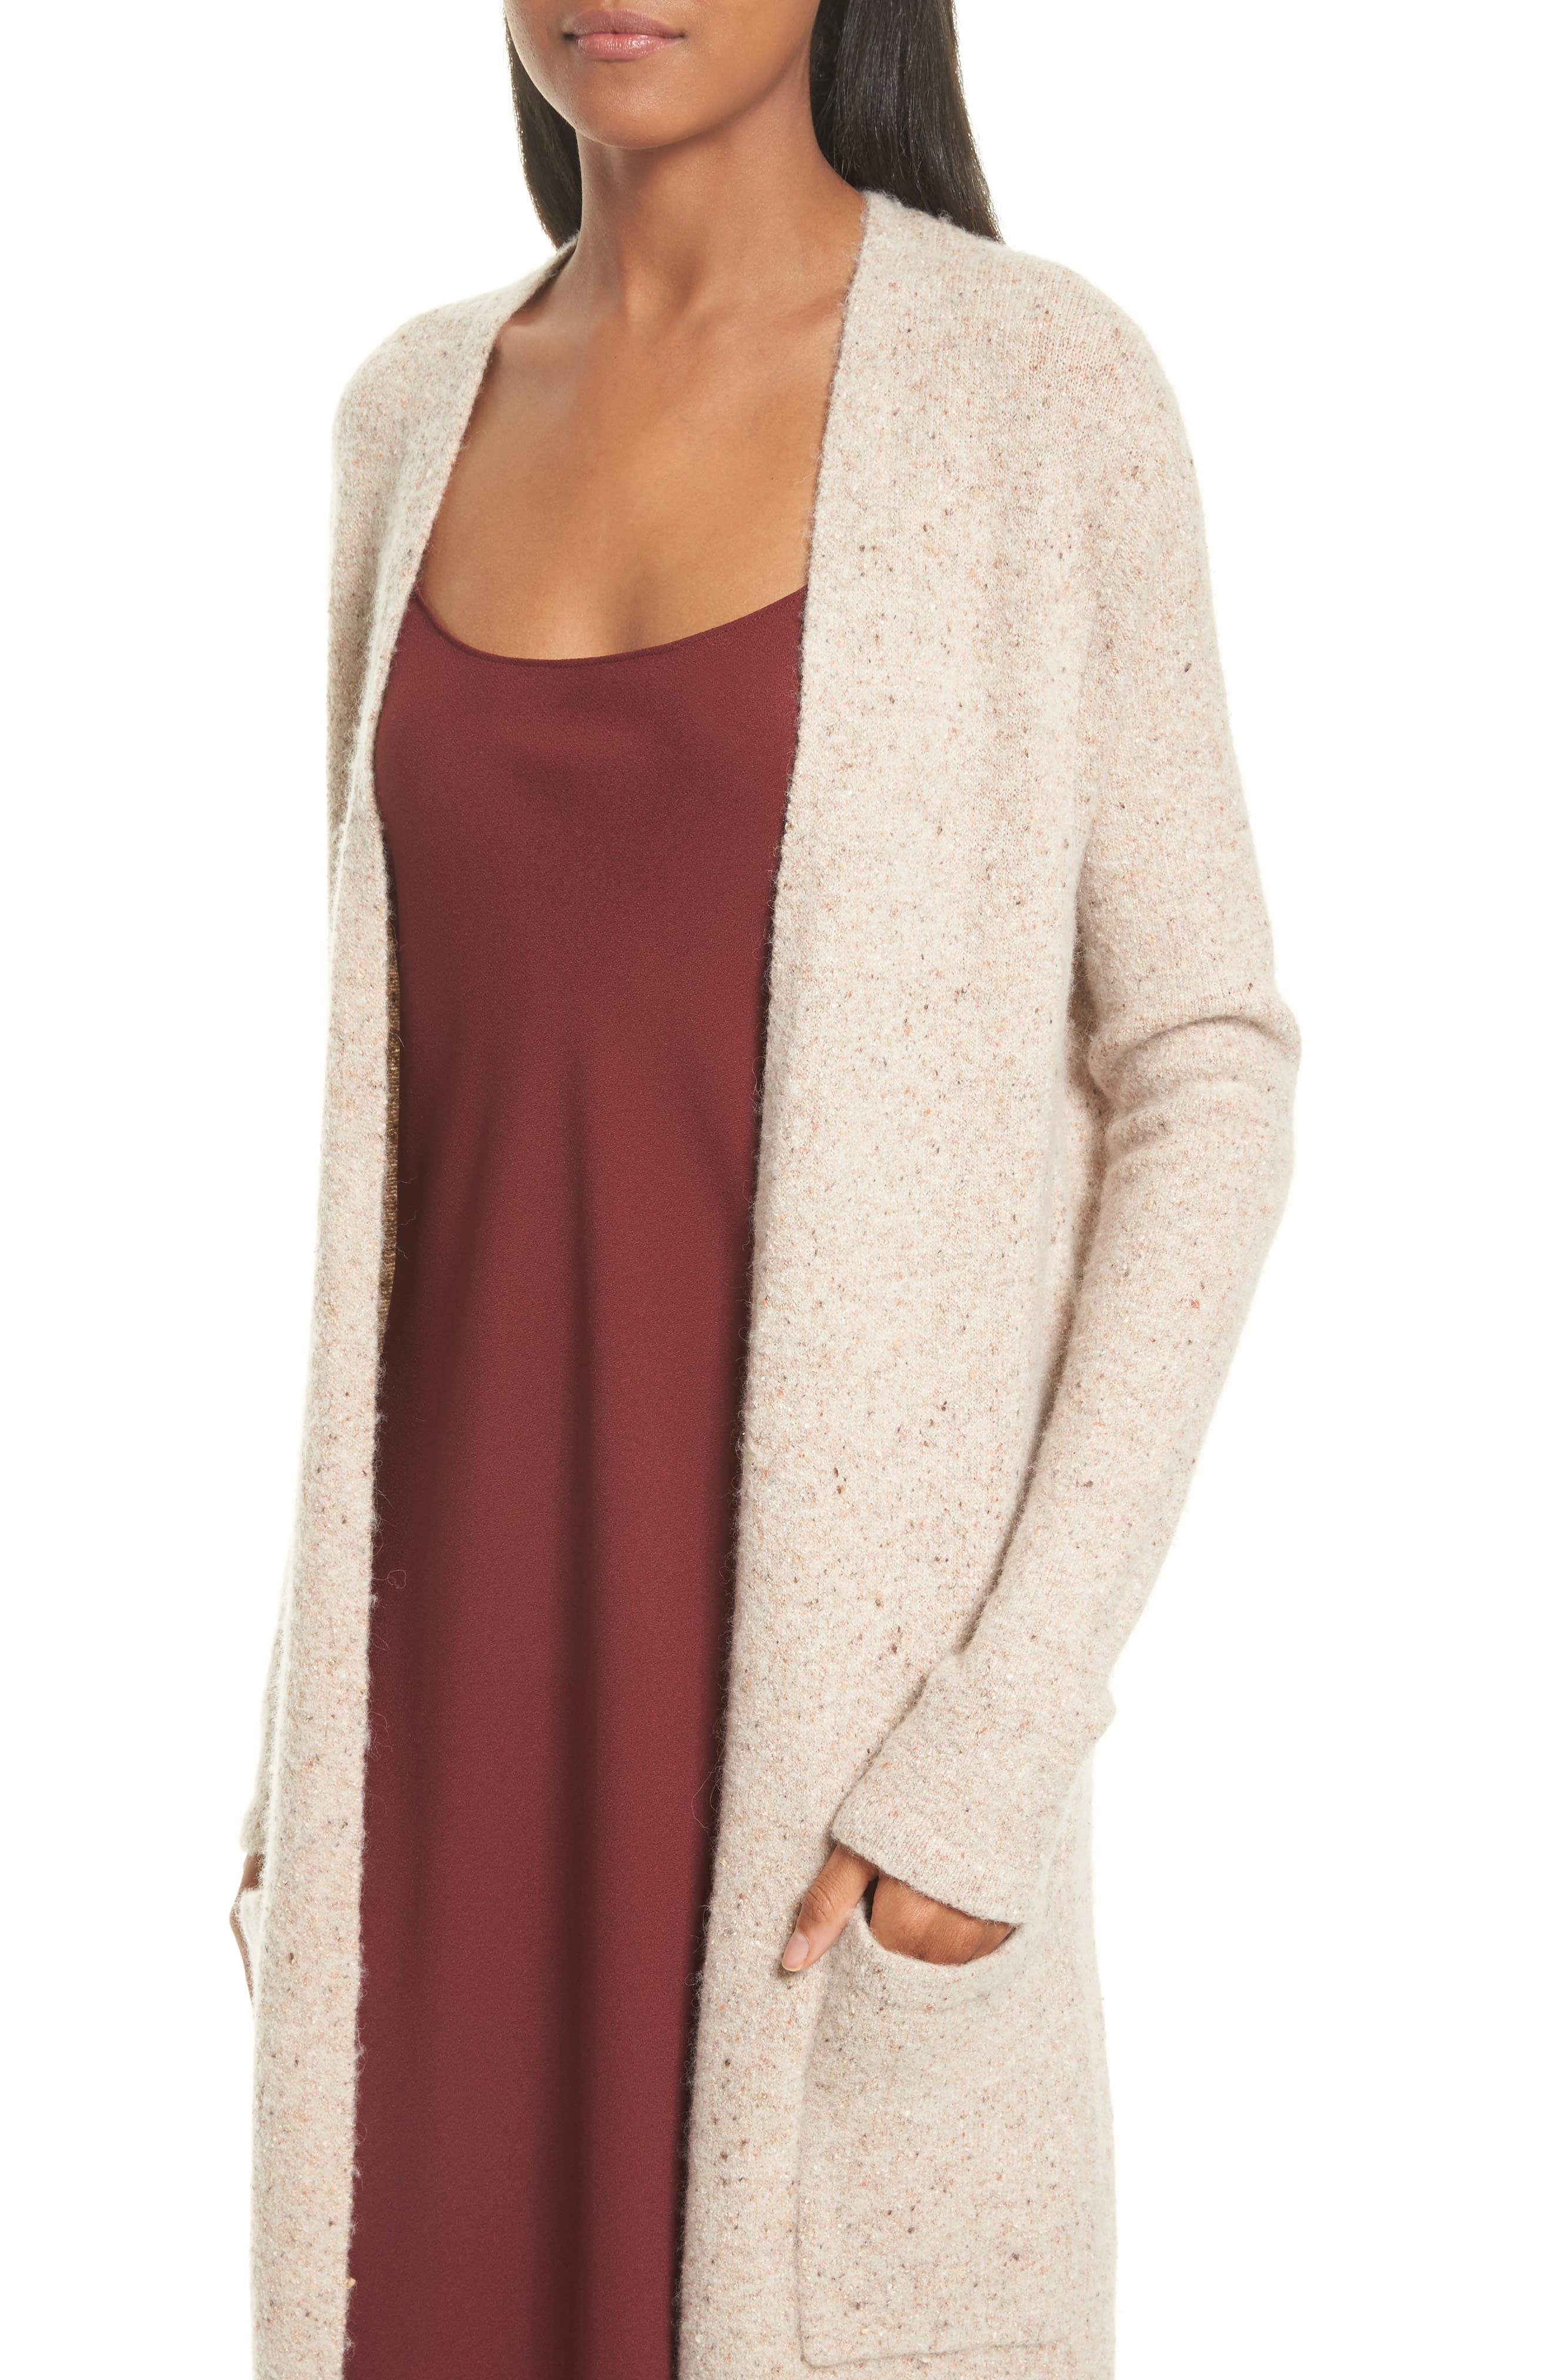 Torina Donegal Longline Cardigan,                             Alternate thumbnail 5, color,                             Oat Multi